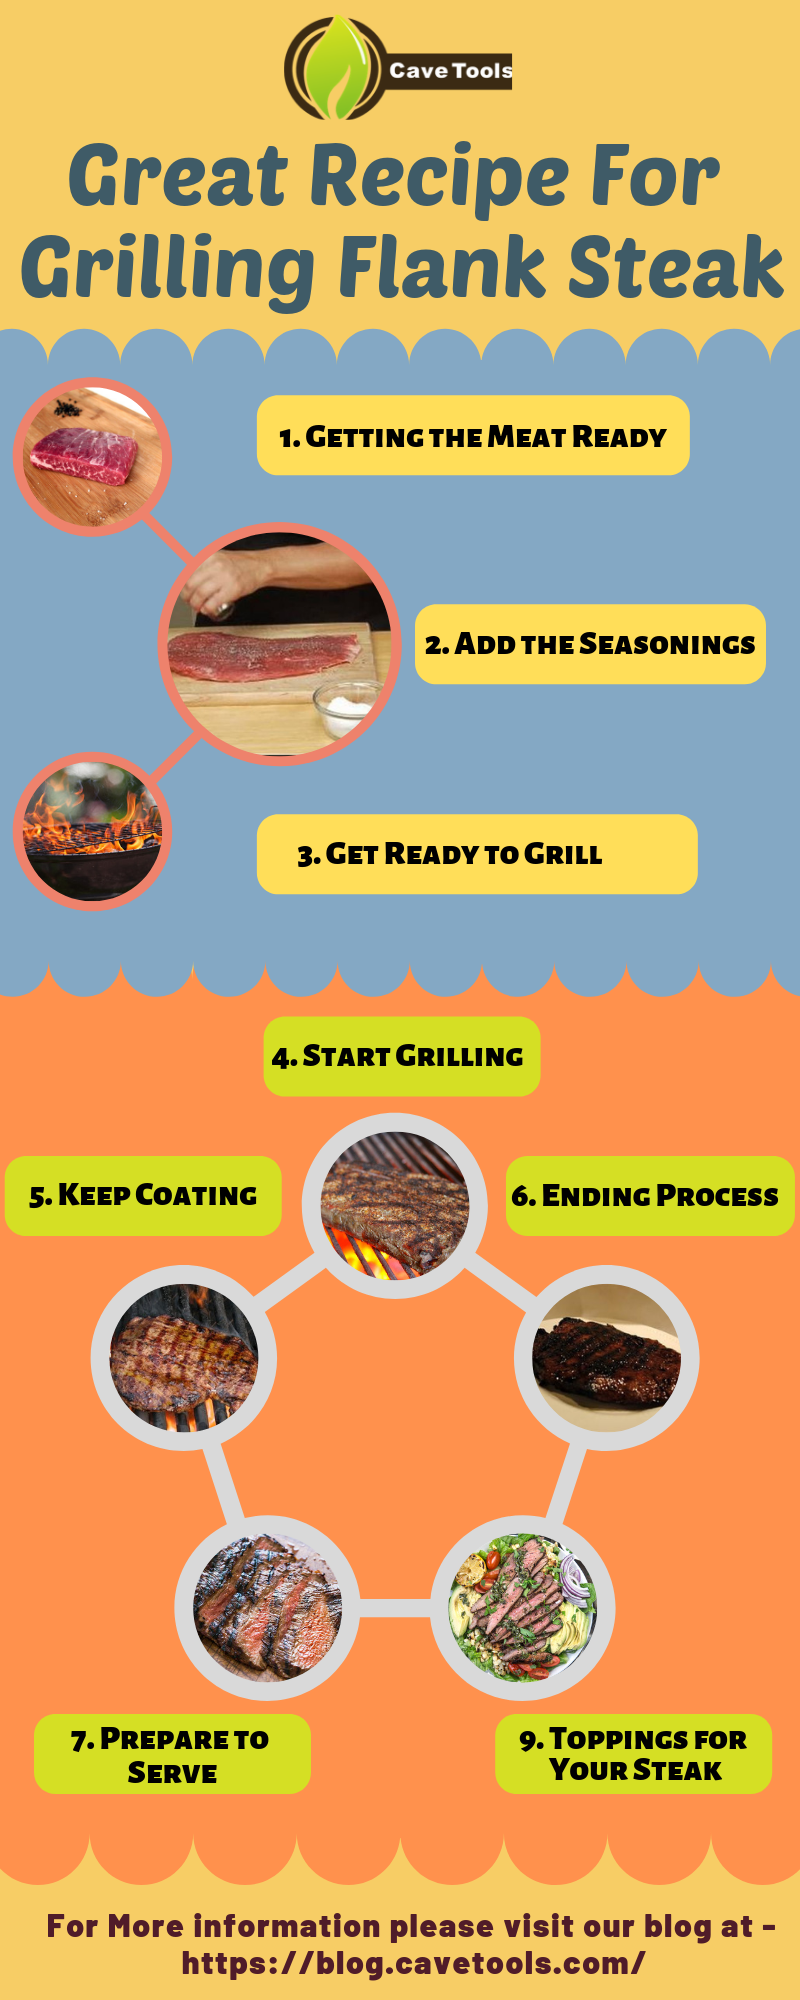 Great Recipe For Grilling Flank Steak